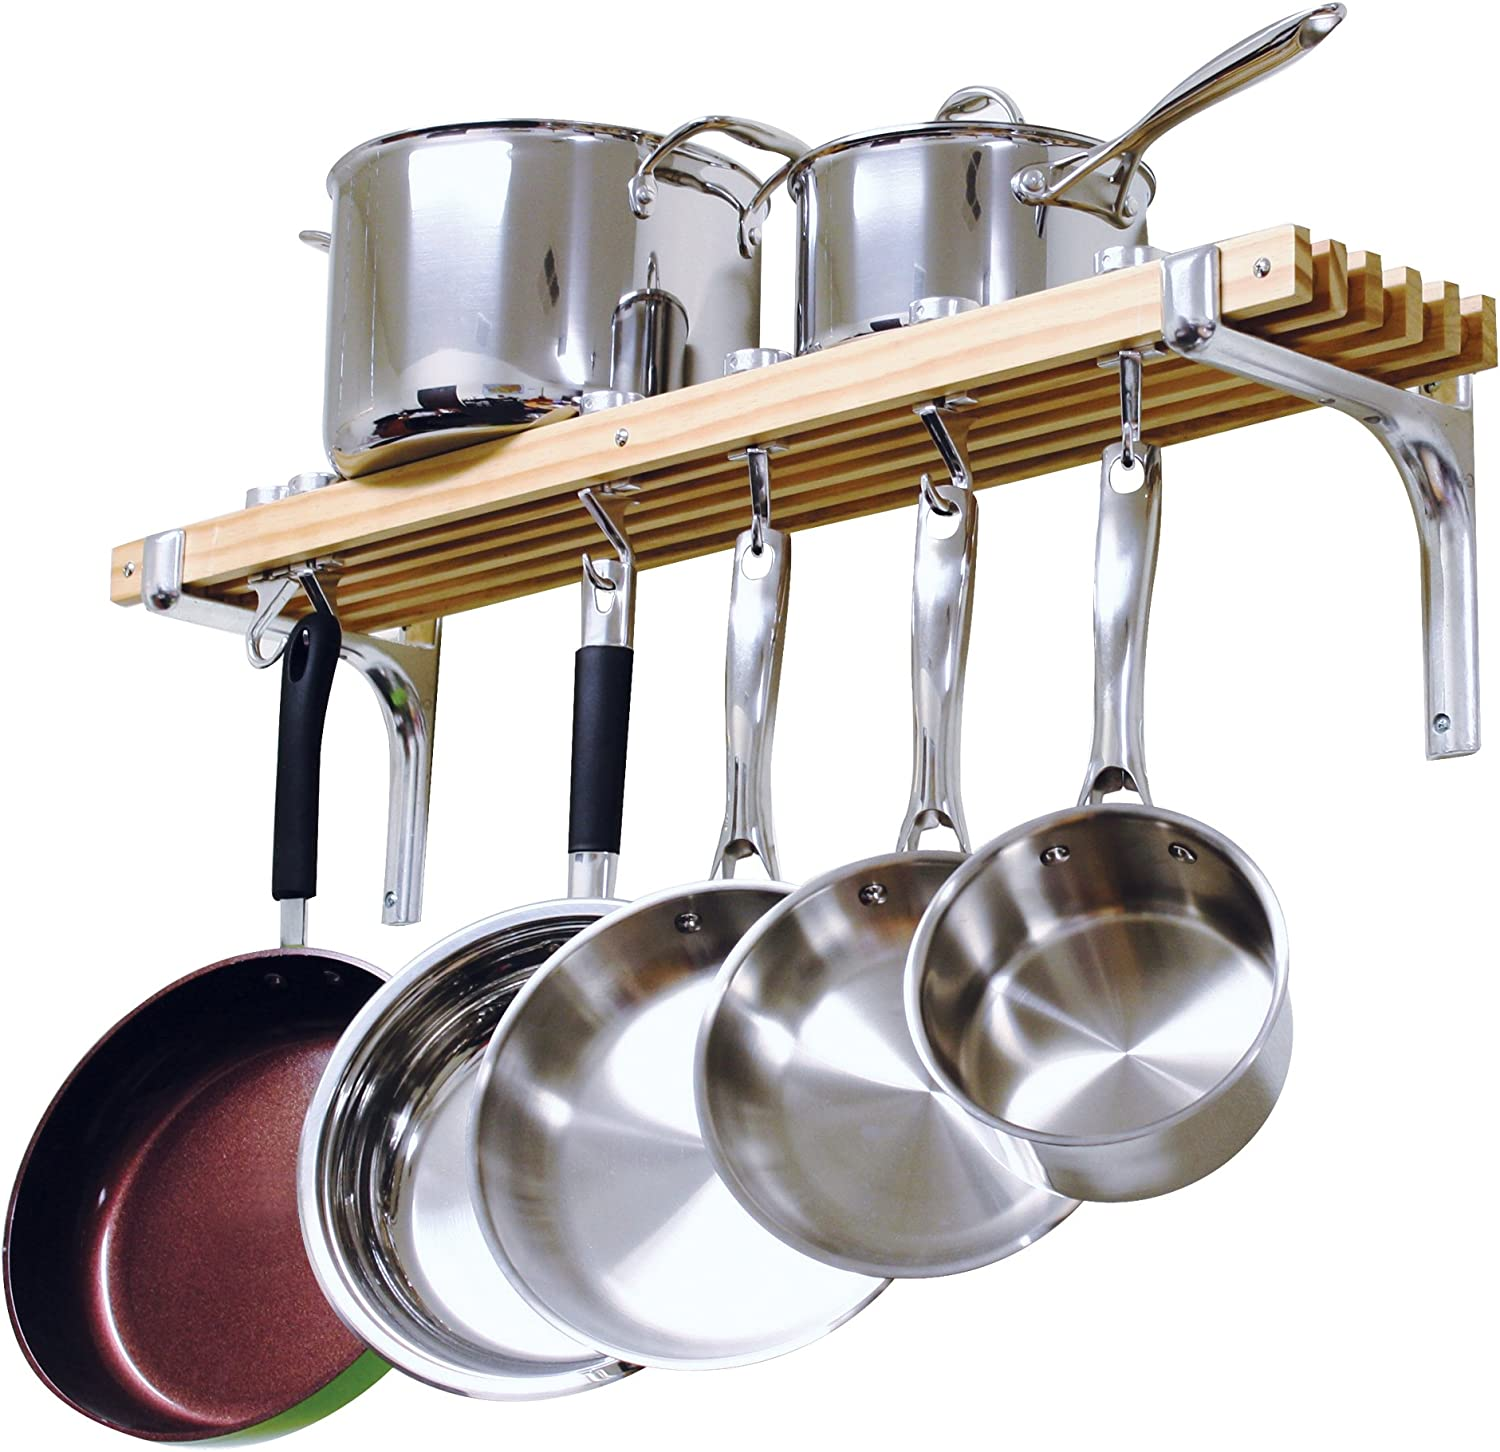 Cooks Standard Wall Mounted Wooden Pot Rack, 36 by 8-Inch: Kitchen Pot Racks: Kitchen & Dining